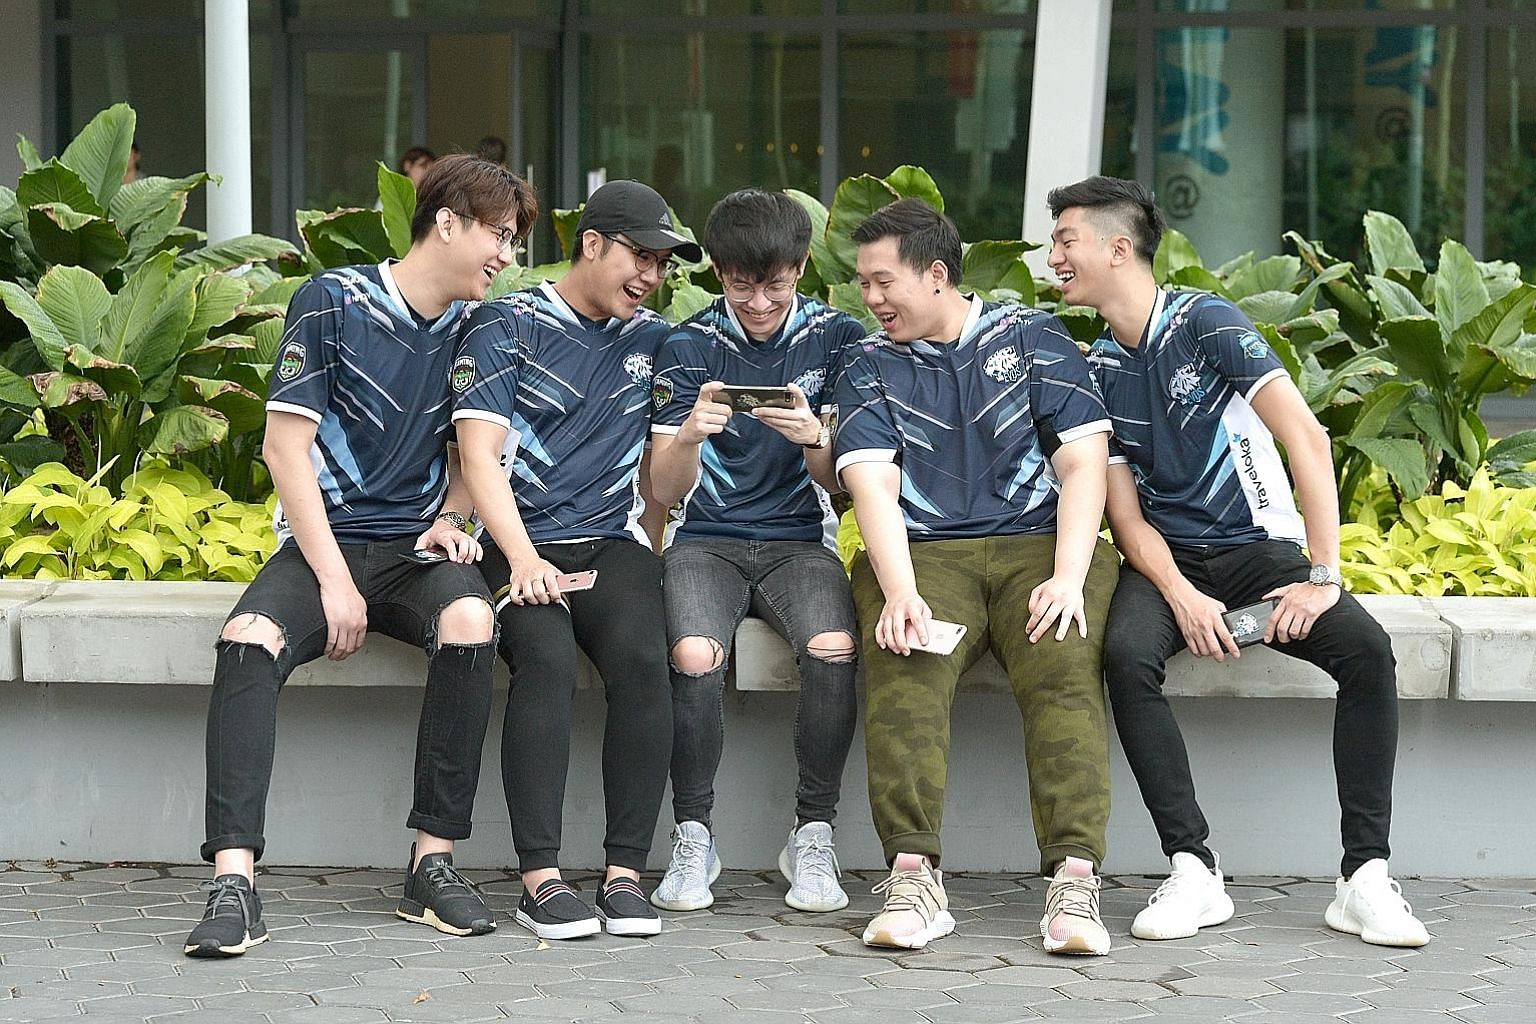 The Evos Esports SG team comprising (from left) Tan Zheng Wei, Akihiro Furusawa, Robert Boon, Andrew Lim and Chong Ru Chyi will be competing in the SEA Clash of Champions tournament in Suntec City. ST PHOTO: SHINTARO TAY